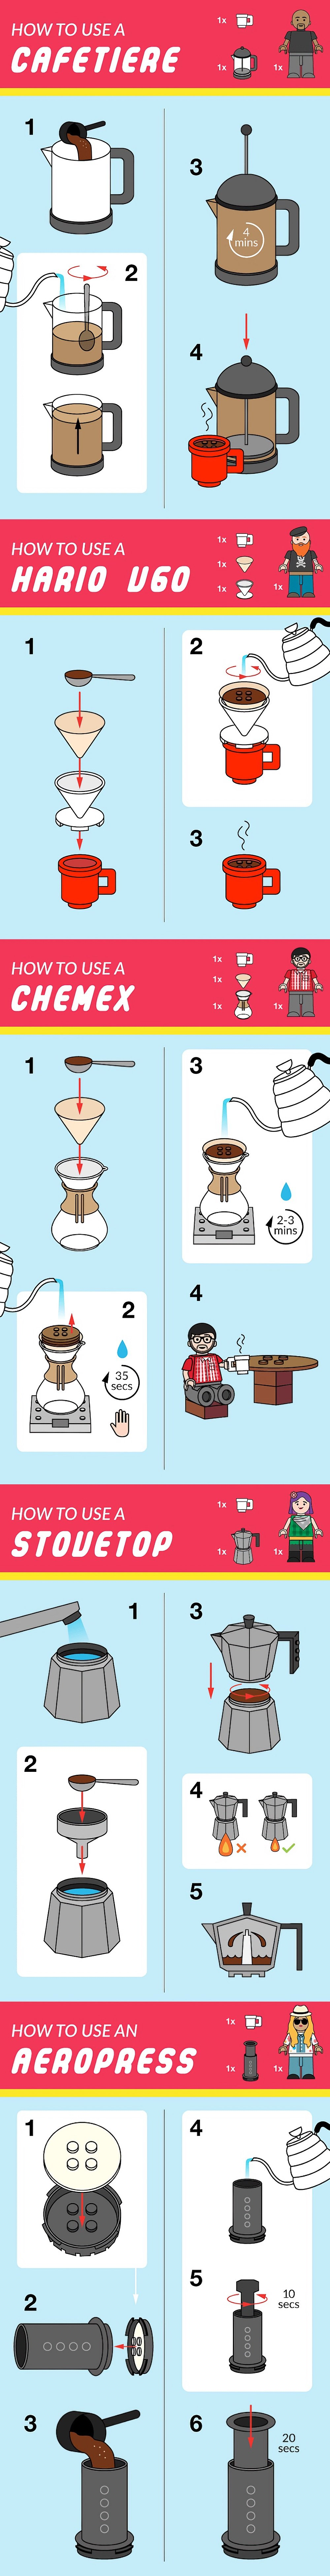 Coffee Brewing Methods Inspired by Lego Manuals